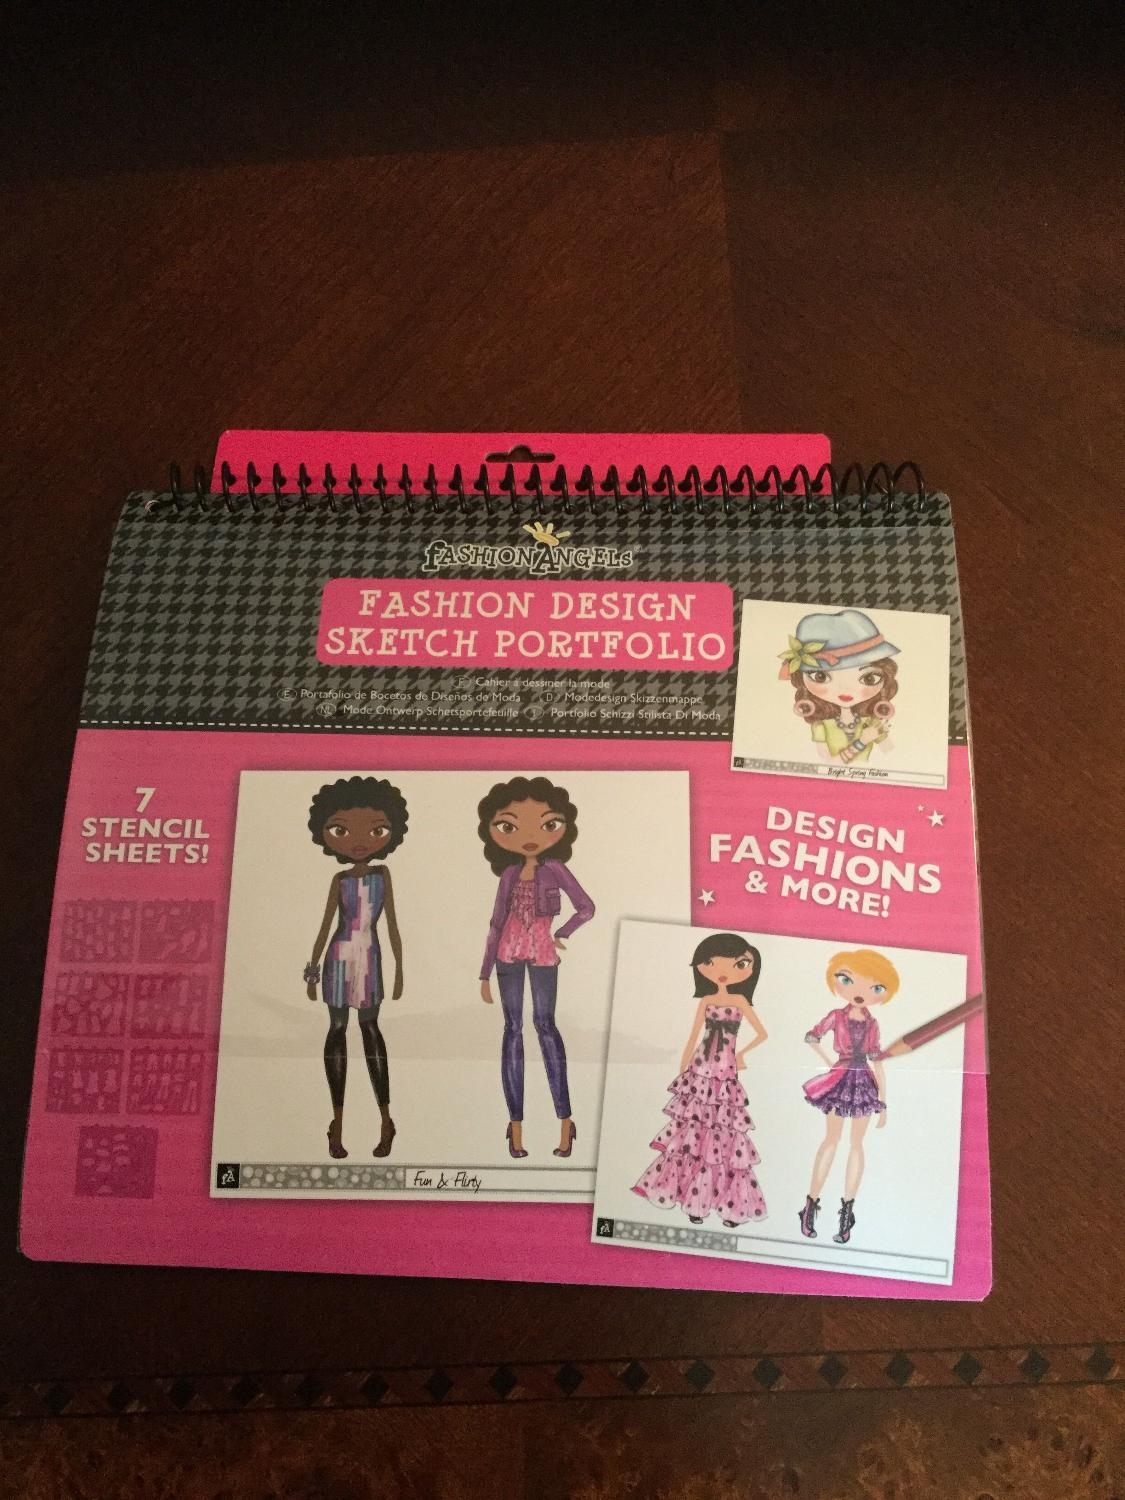 Find More Just Lowered Price Fashion Angels Stencil Set And Sketch Portfolio New And Unopened For Sale At Up To 90 Off